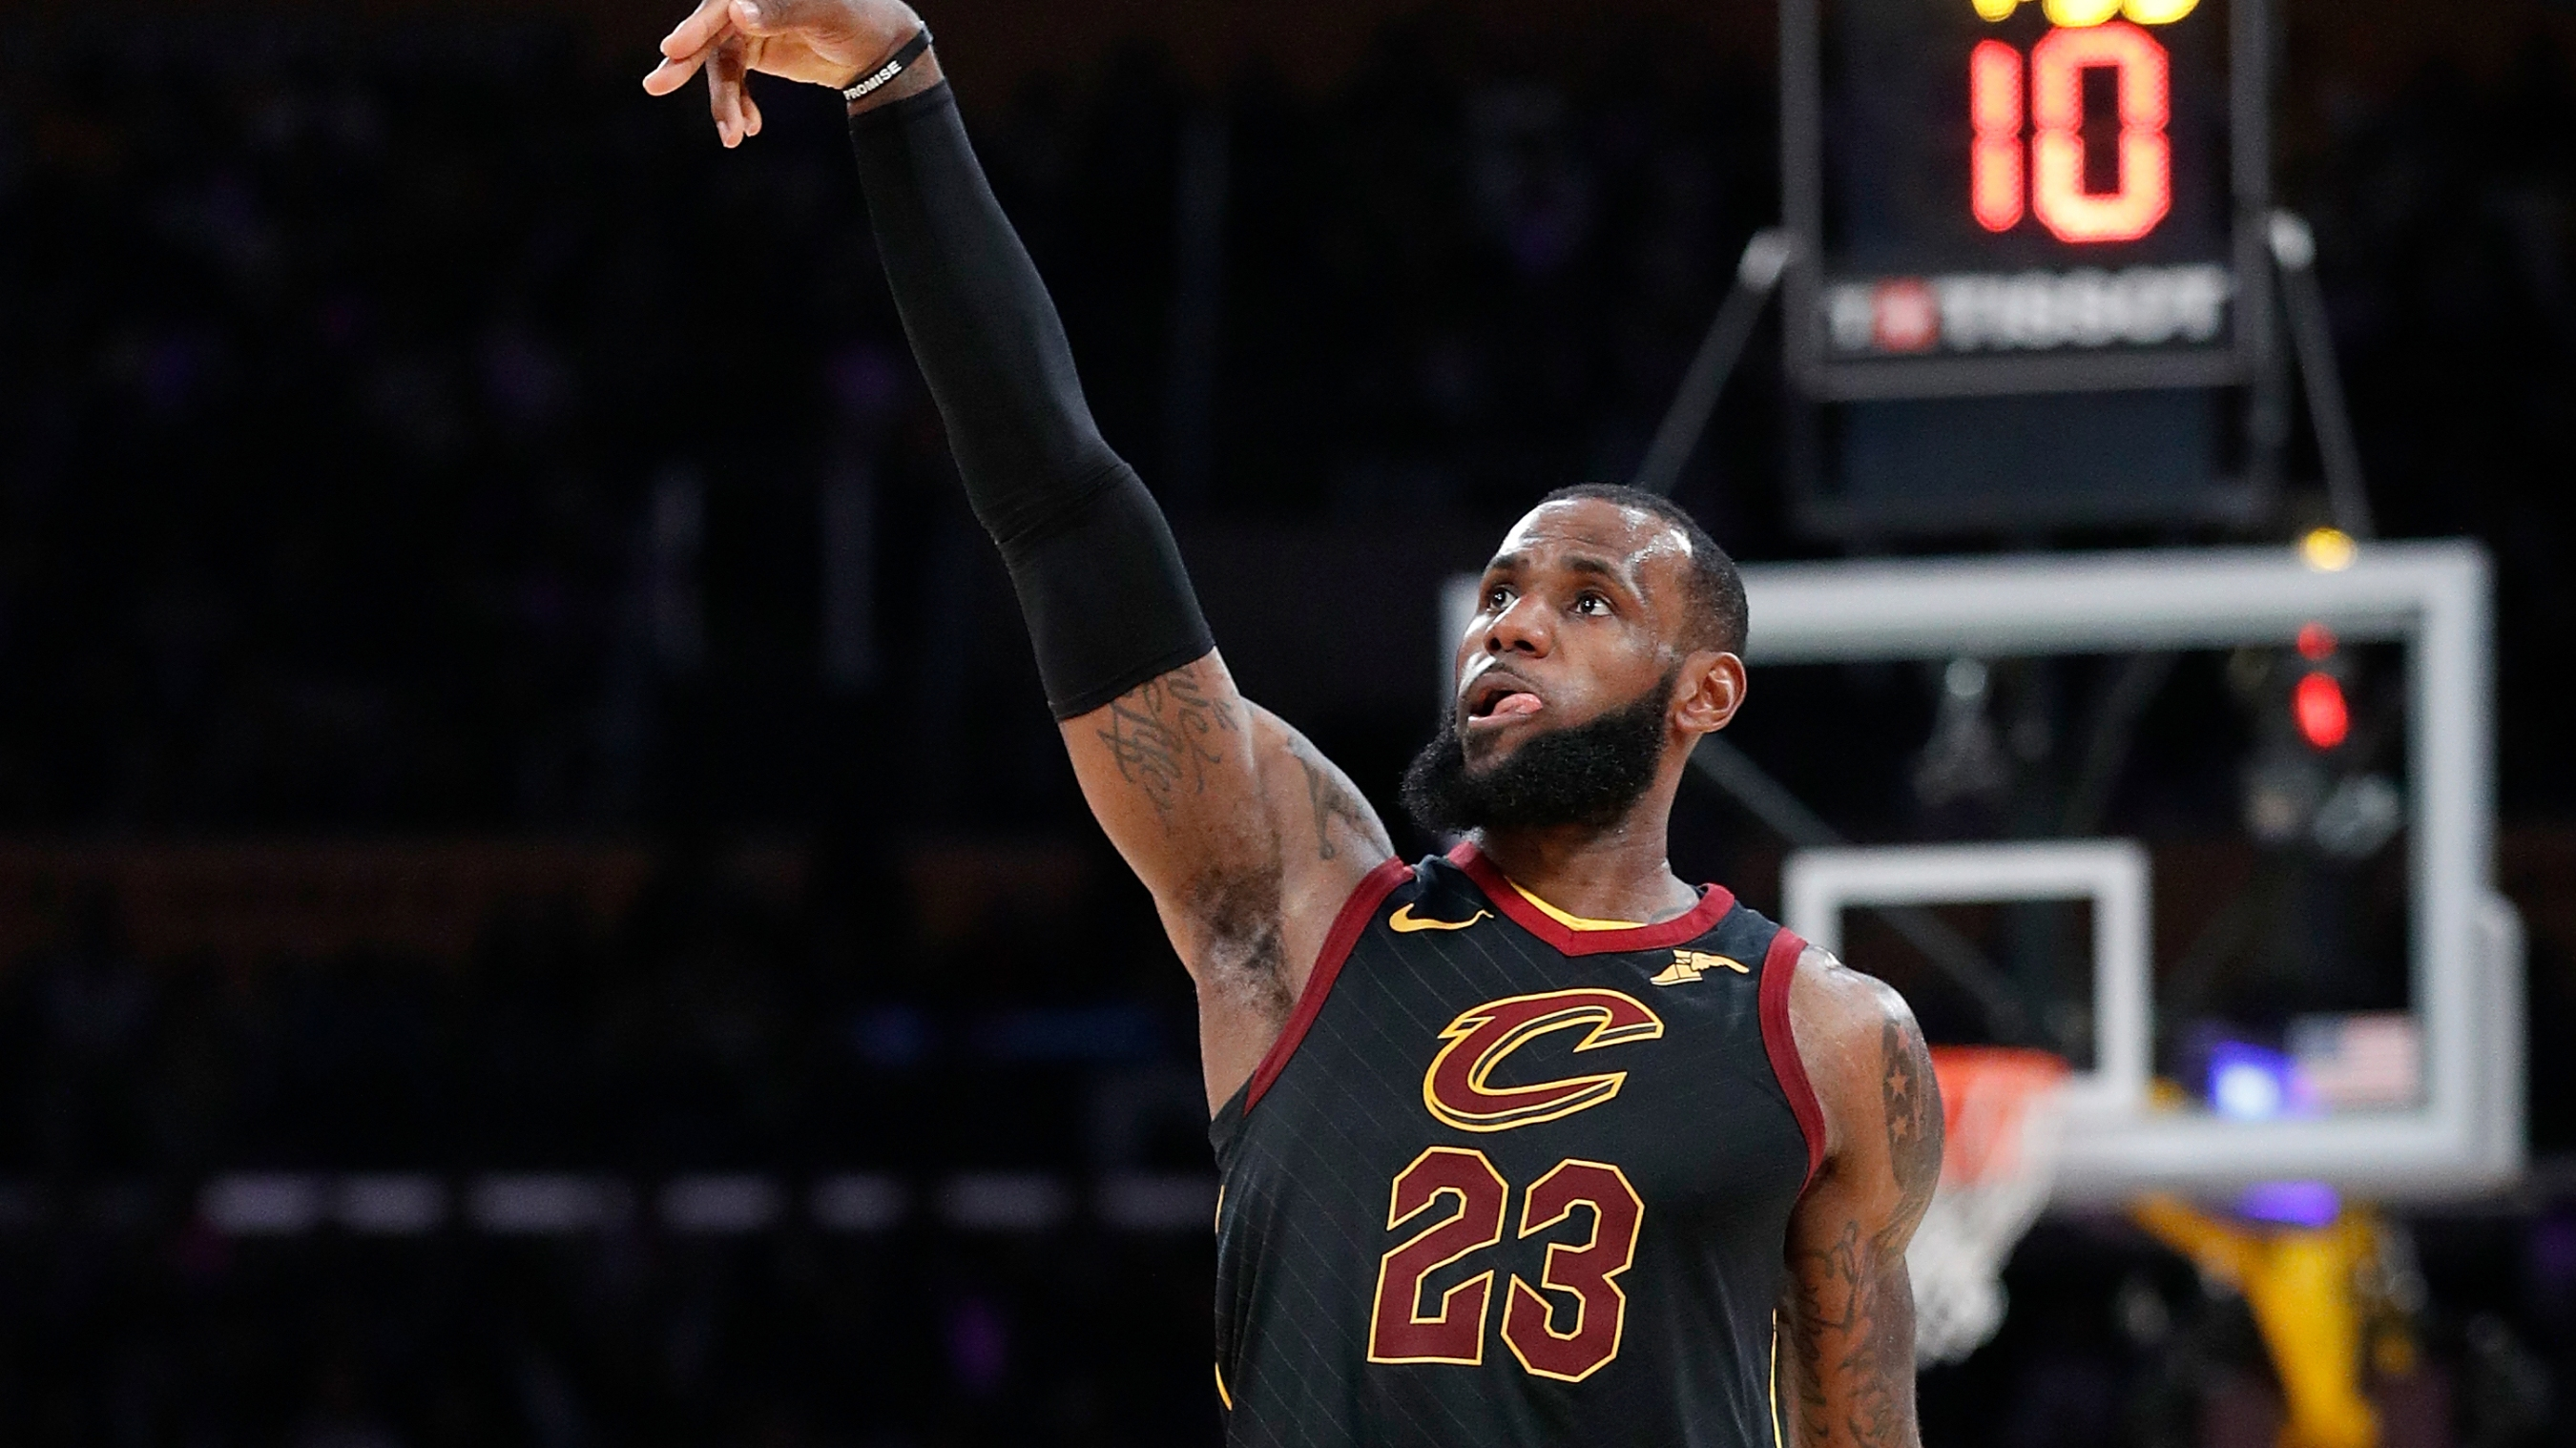 f208bb69327 LeBron visits Los Angeles and courtside is as interesting to watch as the  game itself